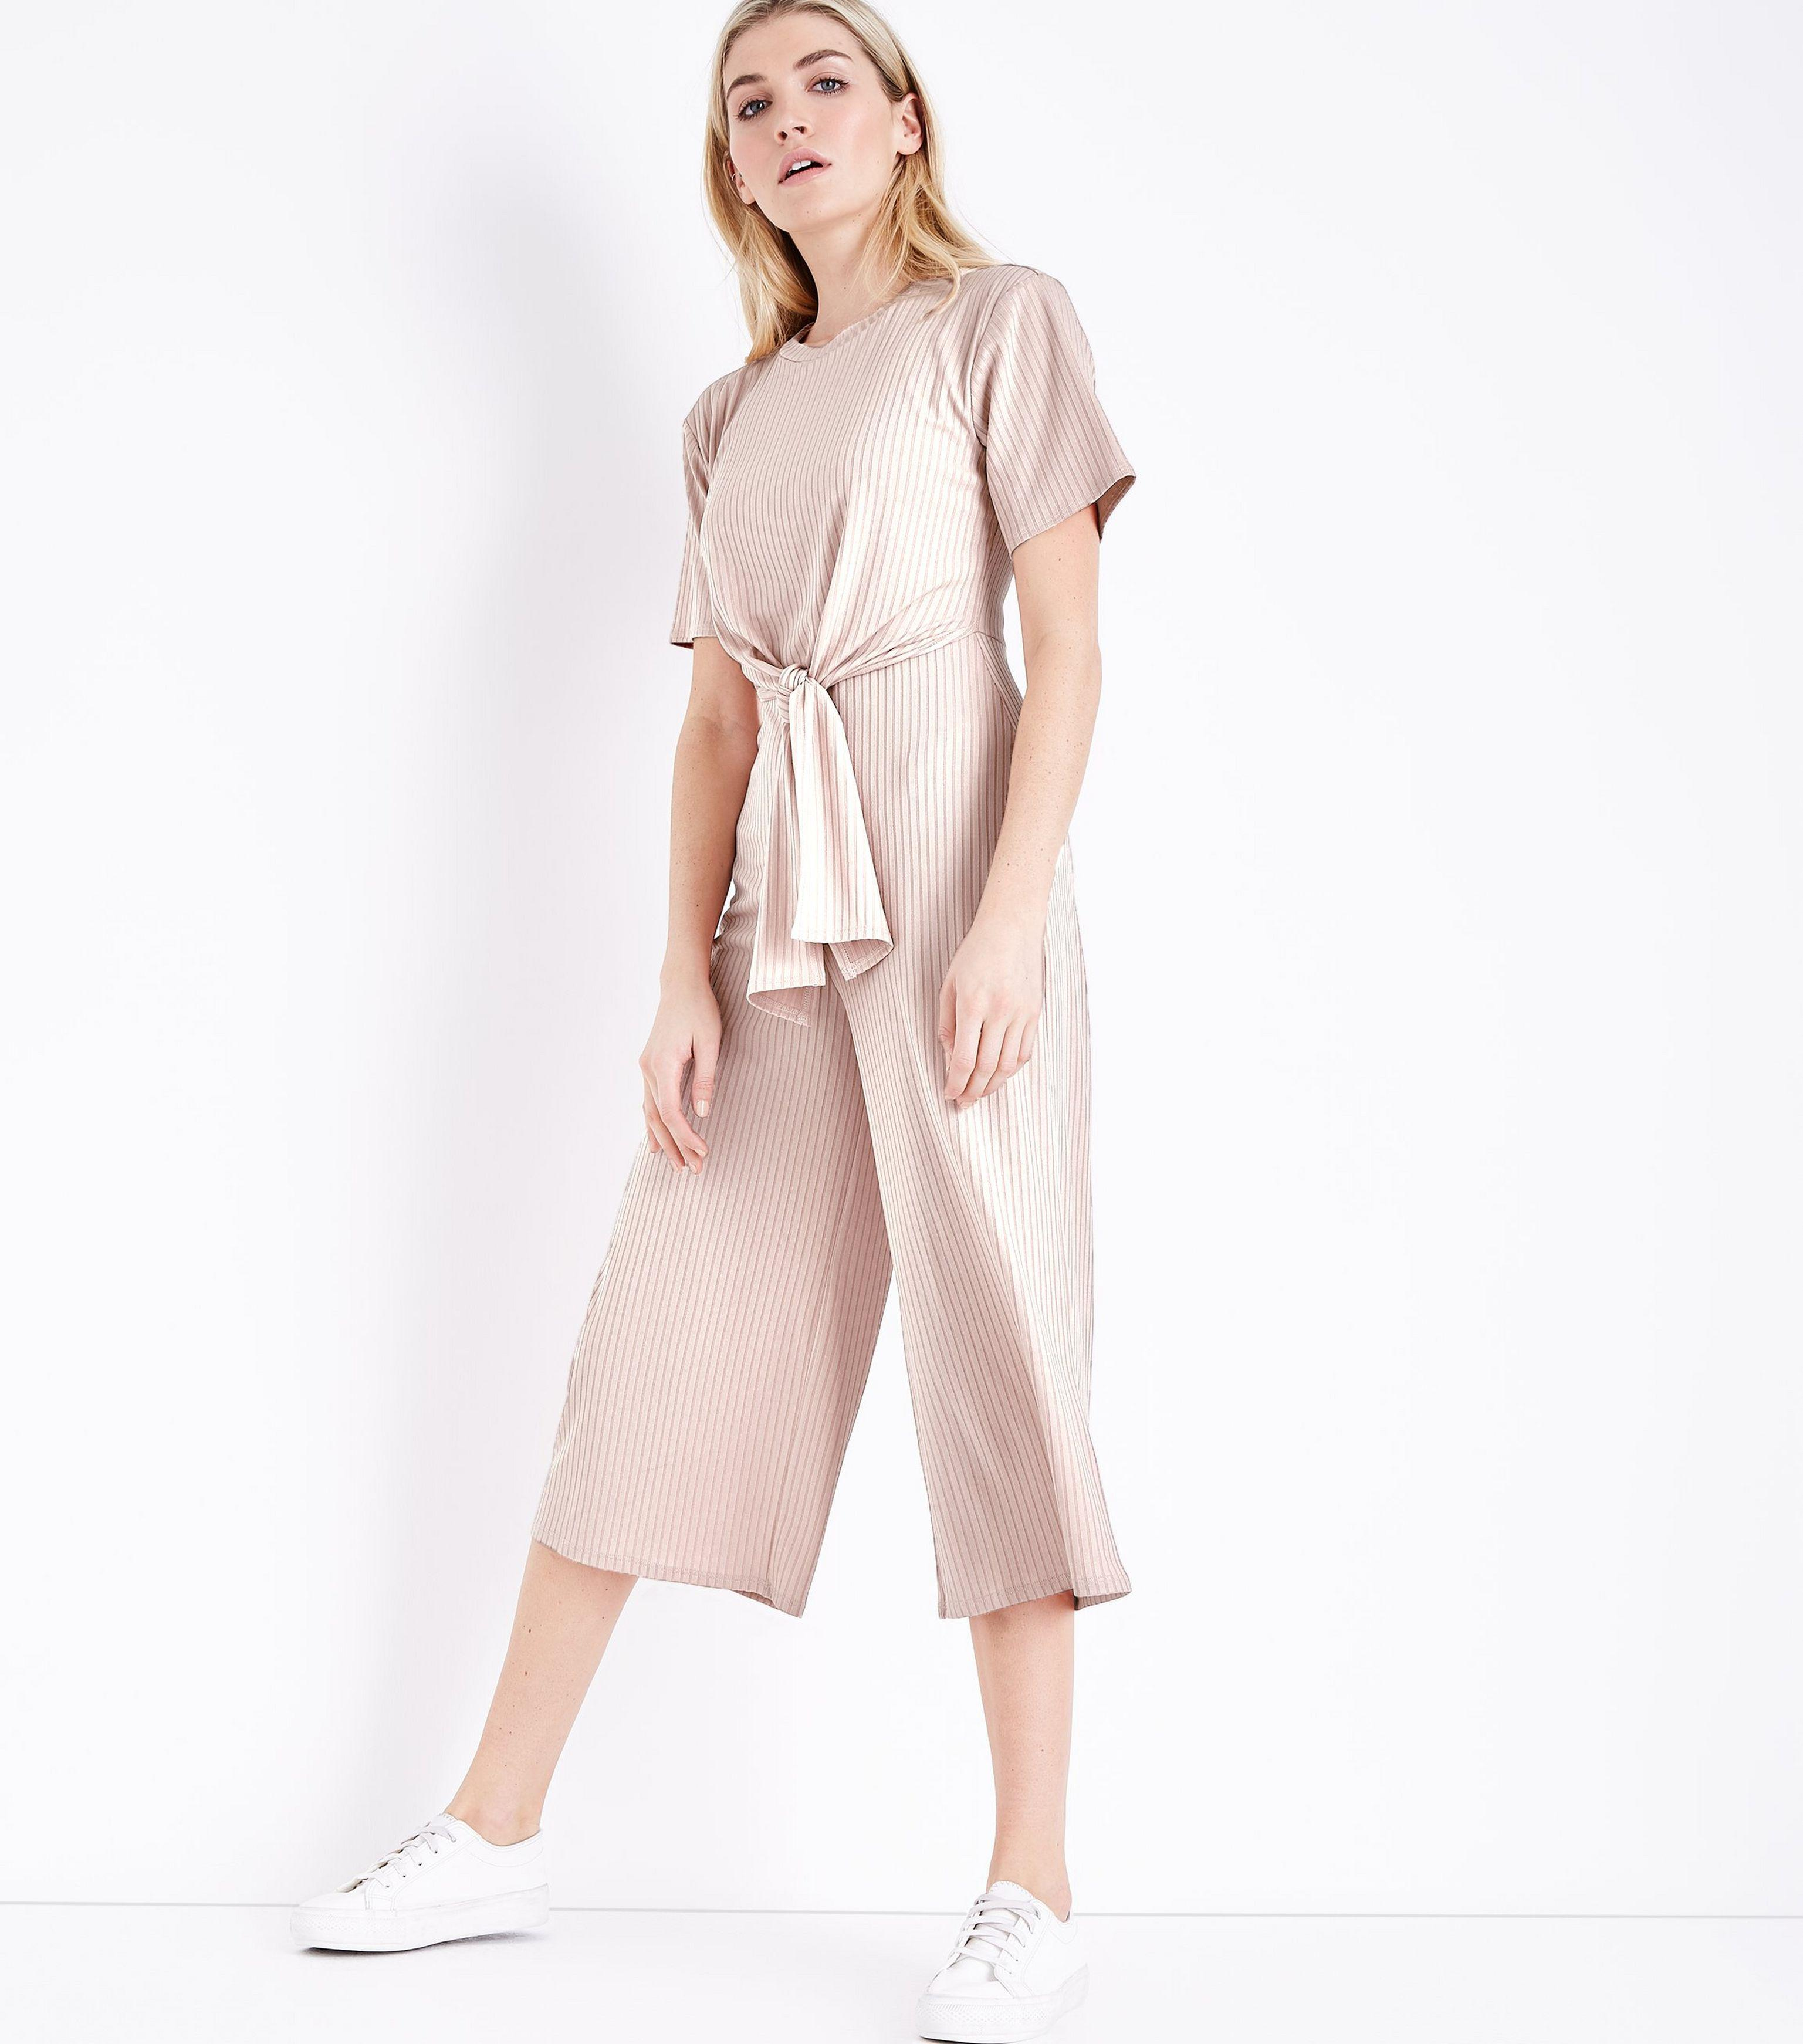 c0aadb6de7 New Look Pale Pink Ribbed Tie Front Jumpsuit in Pink - Lyst